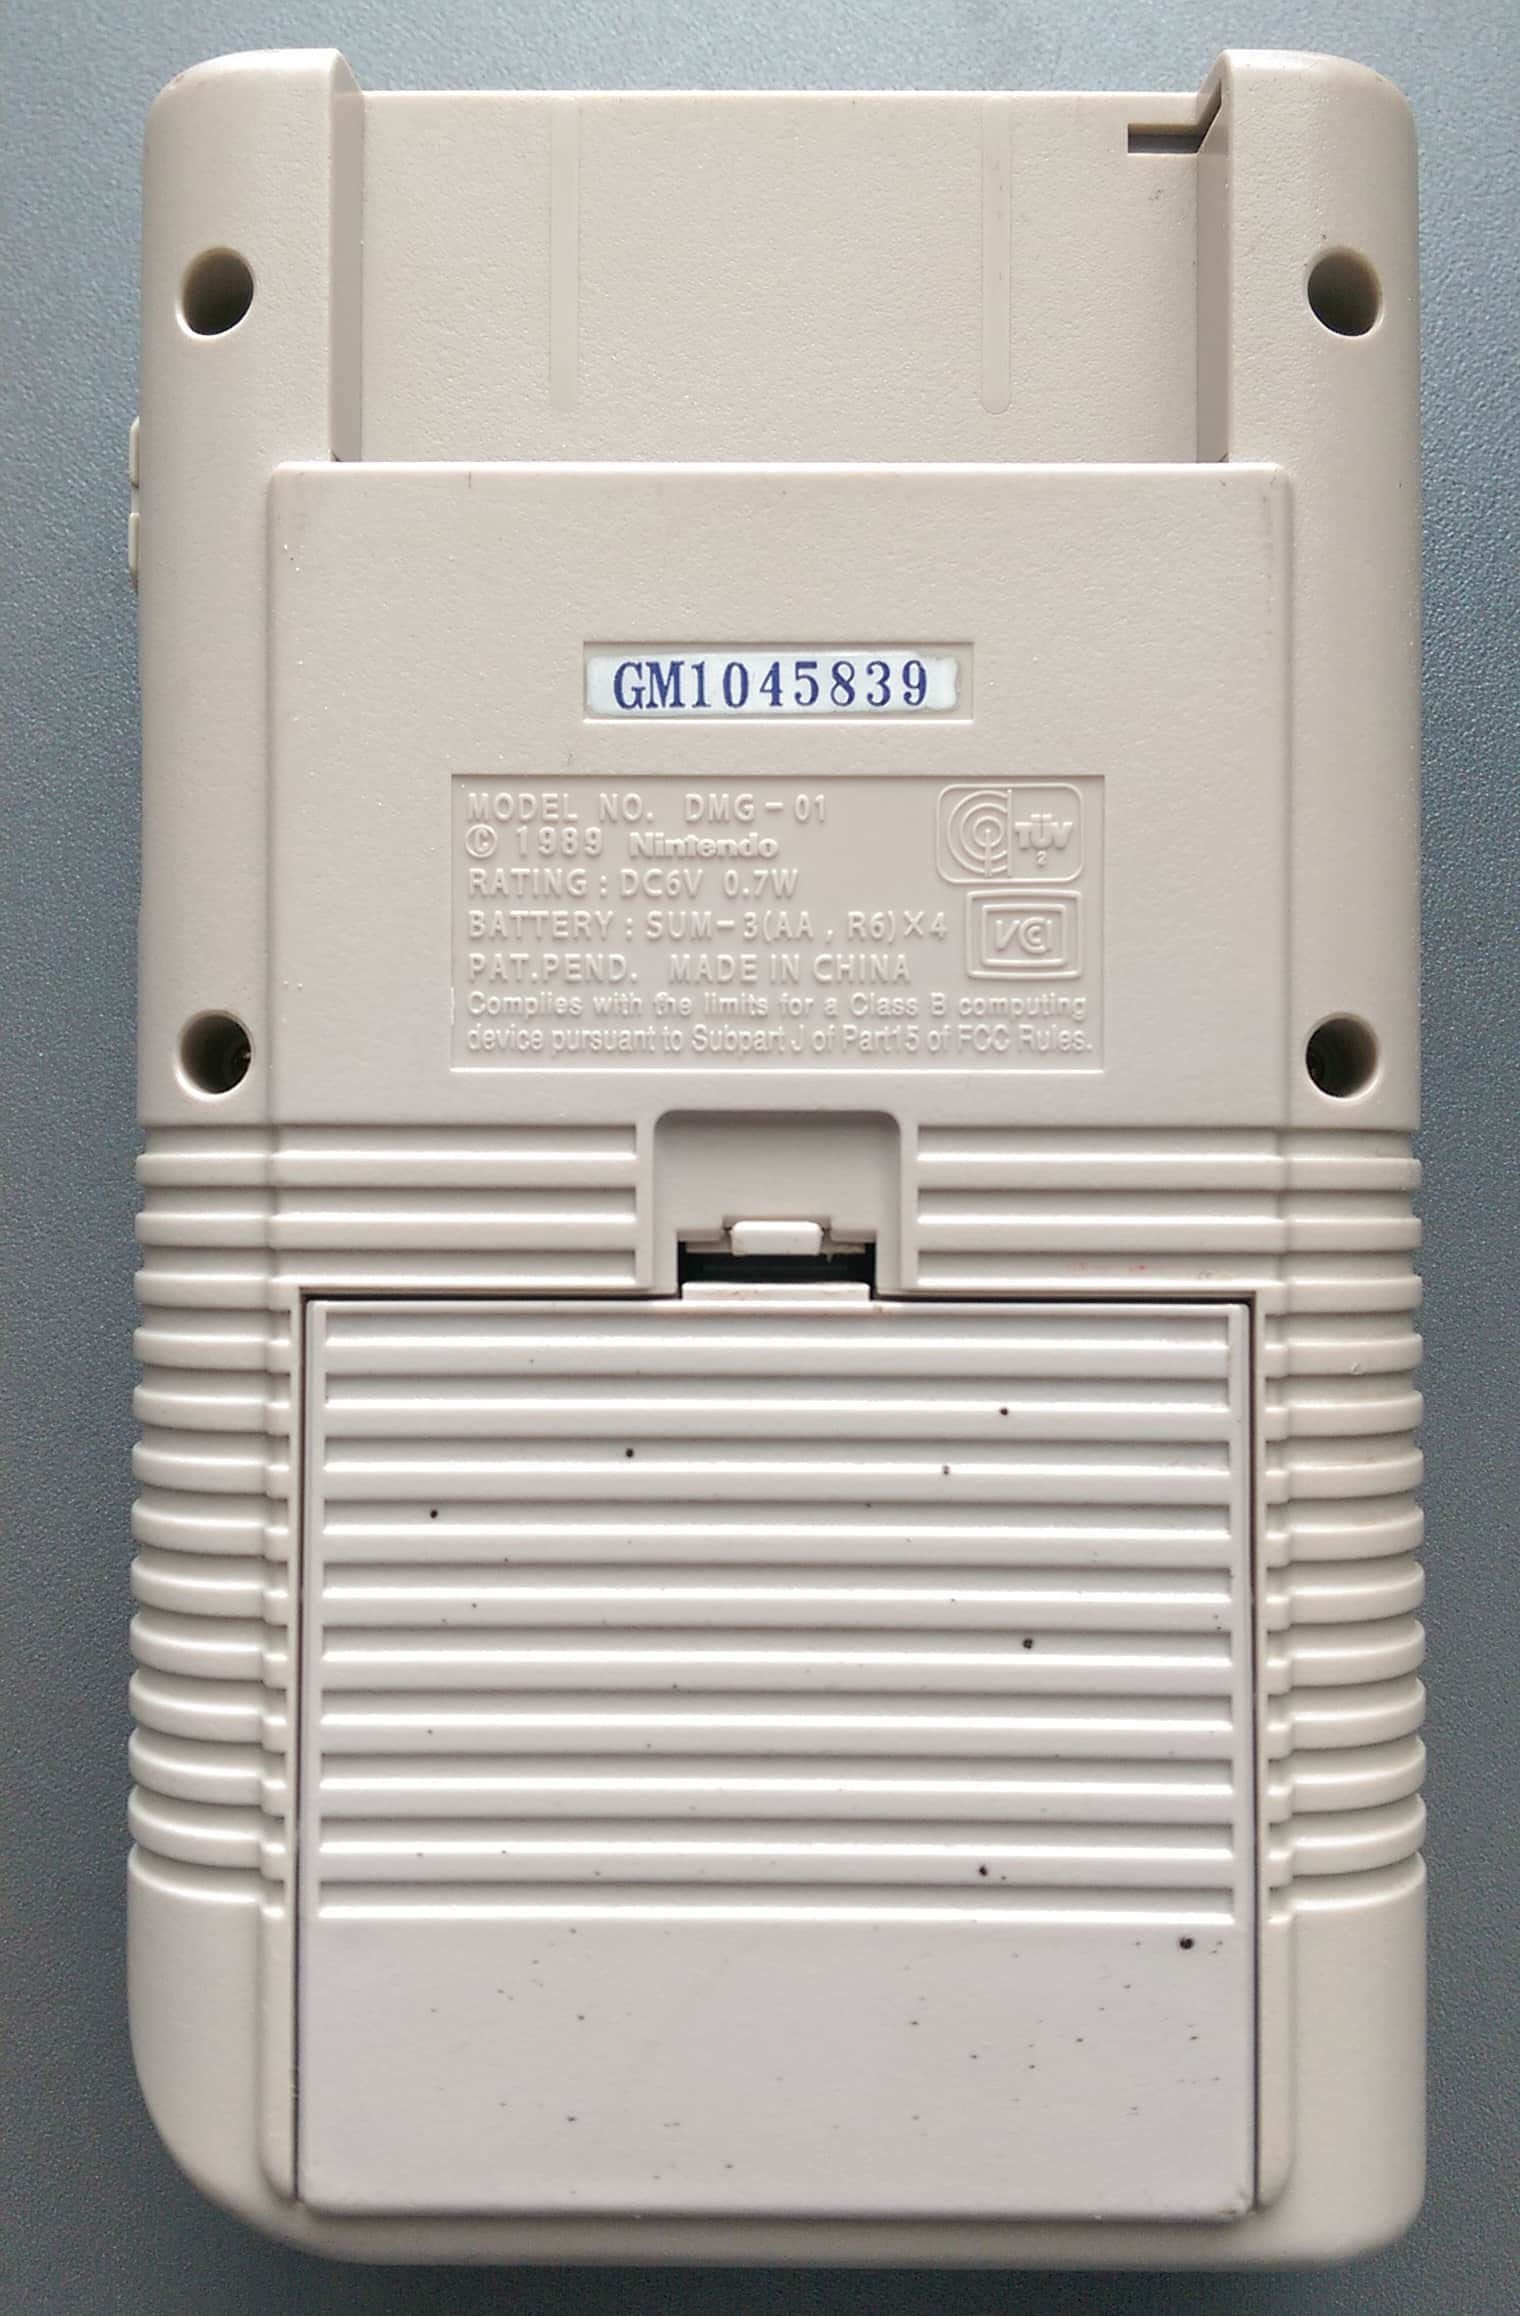 Dmg Gm1045839 Gekkio Game Boy Hardware Database